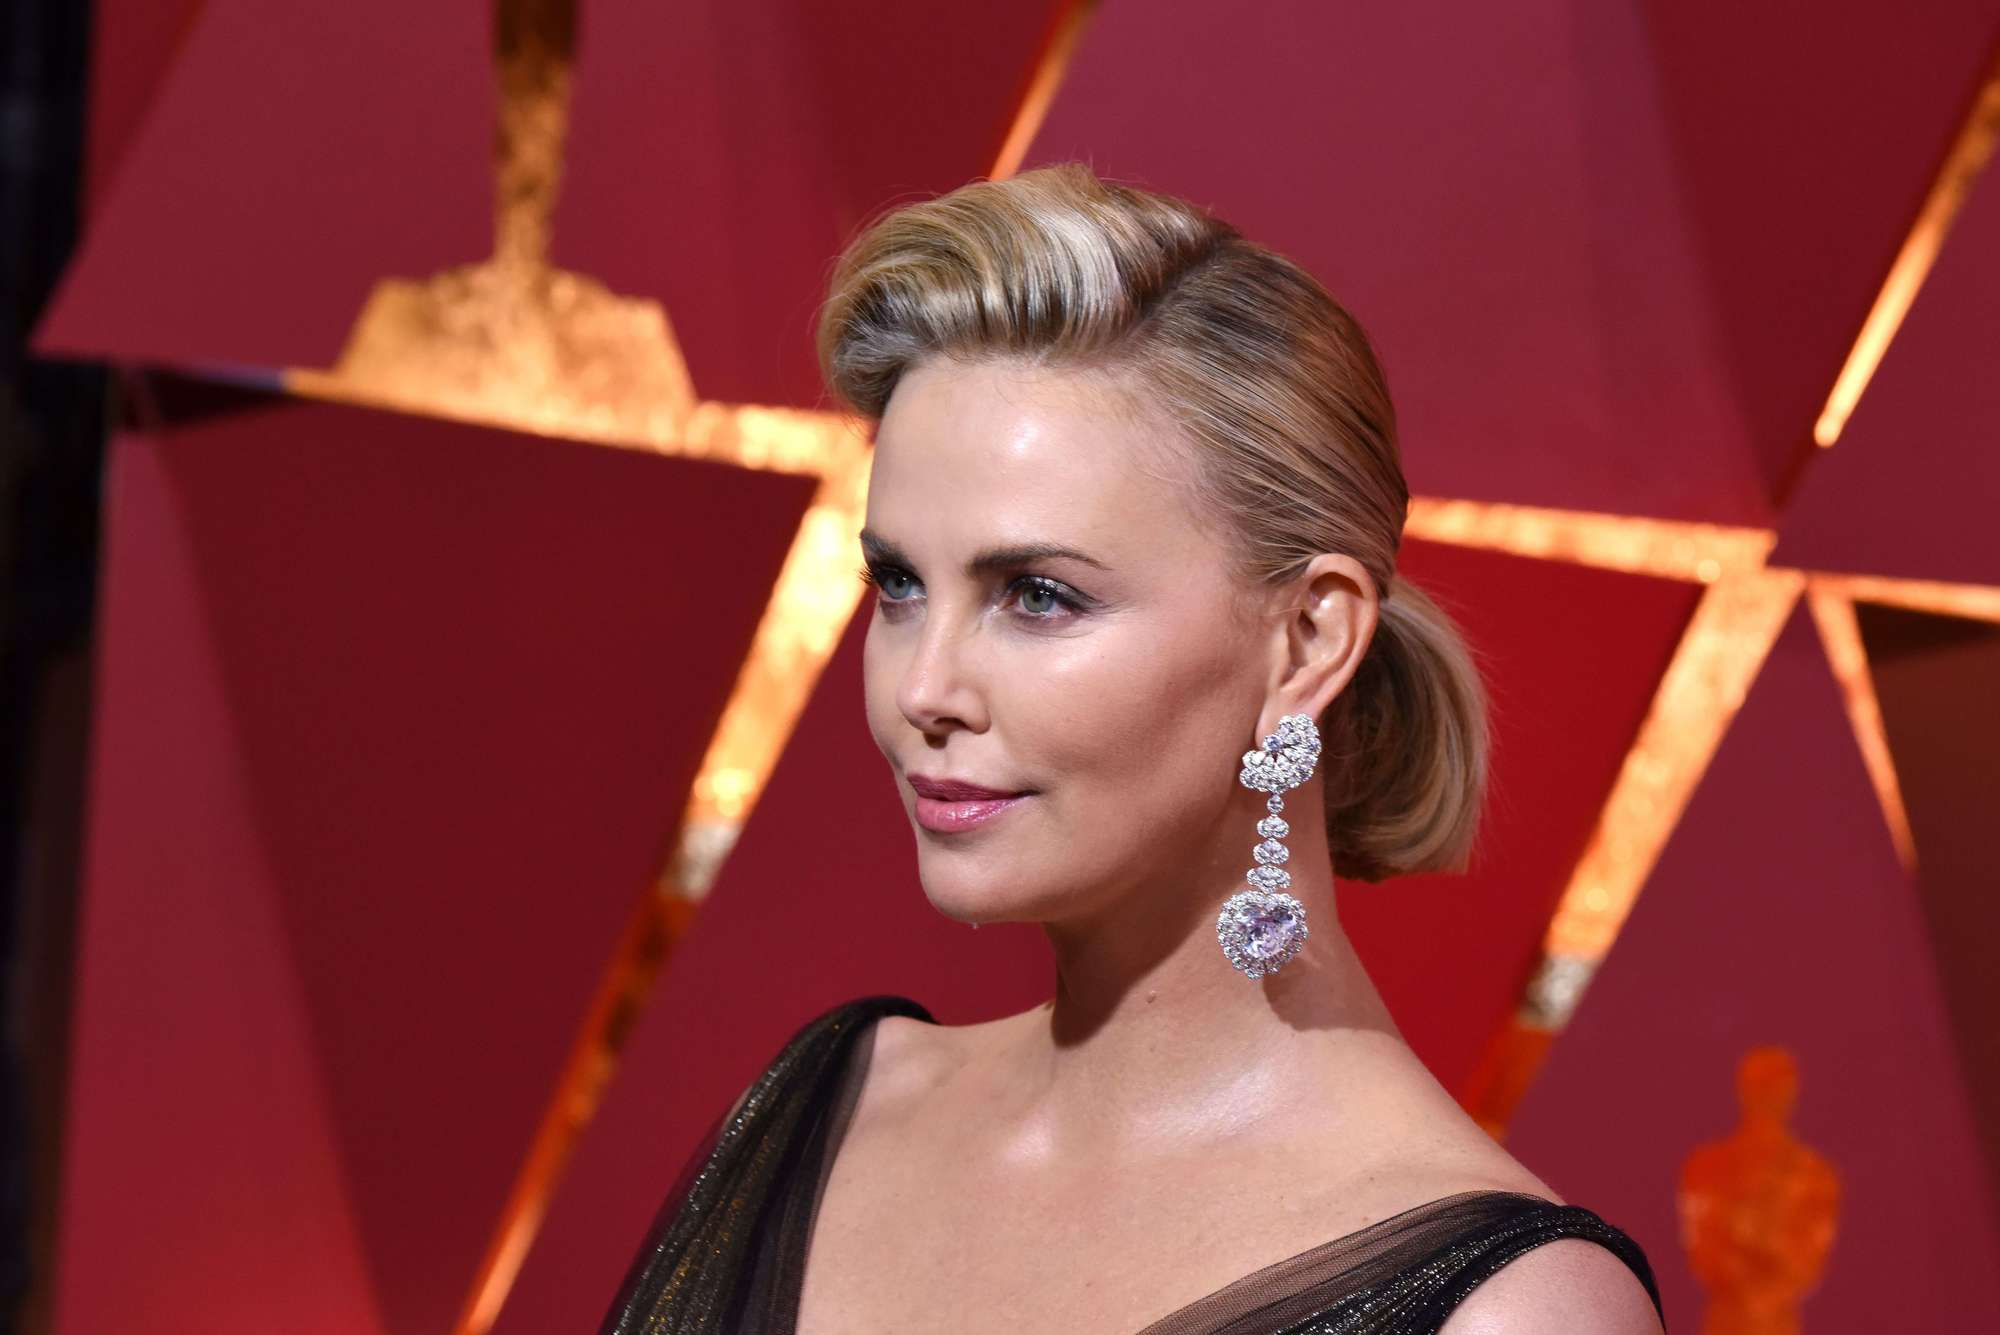 charlize theron at the oscars 2017 wearing a black dress with large earrings and her blonde hair in a quiffed ponytail